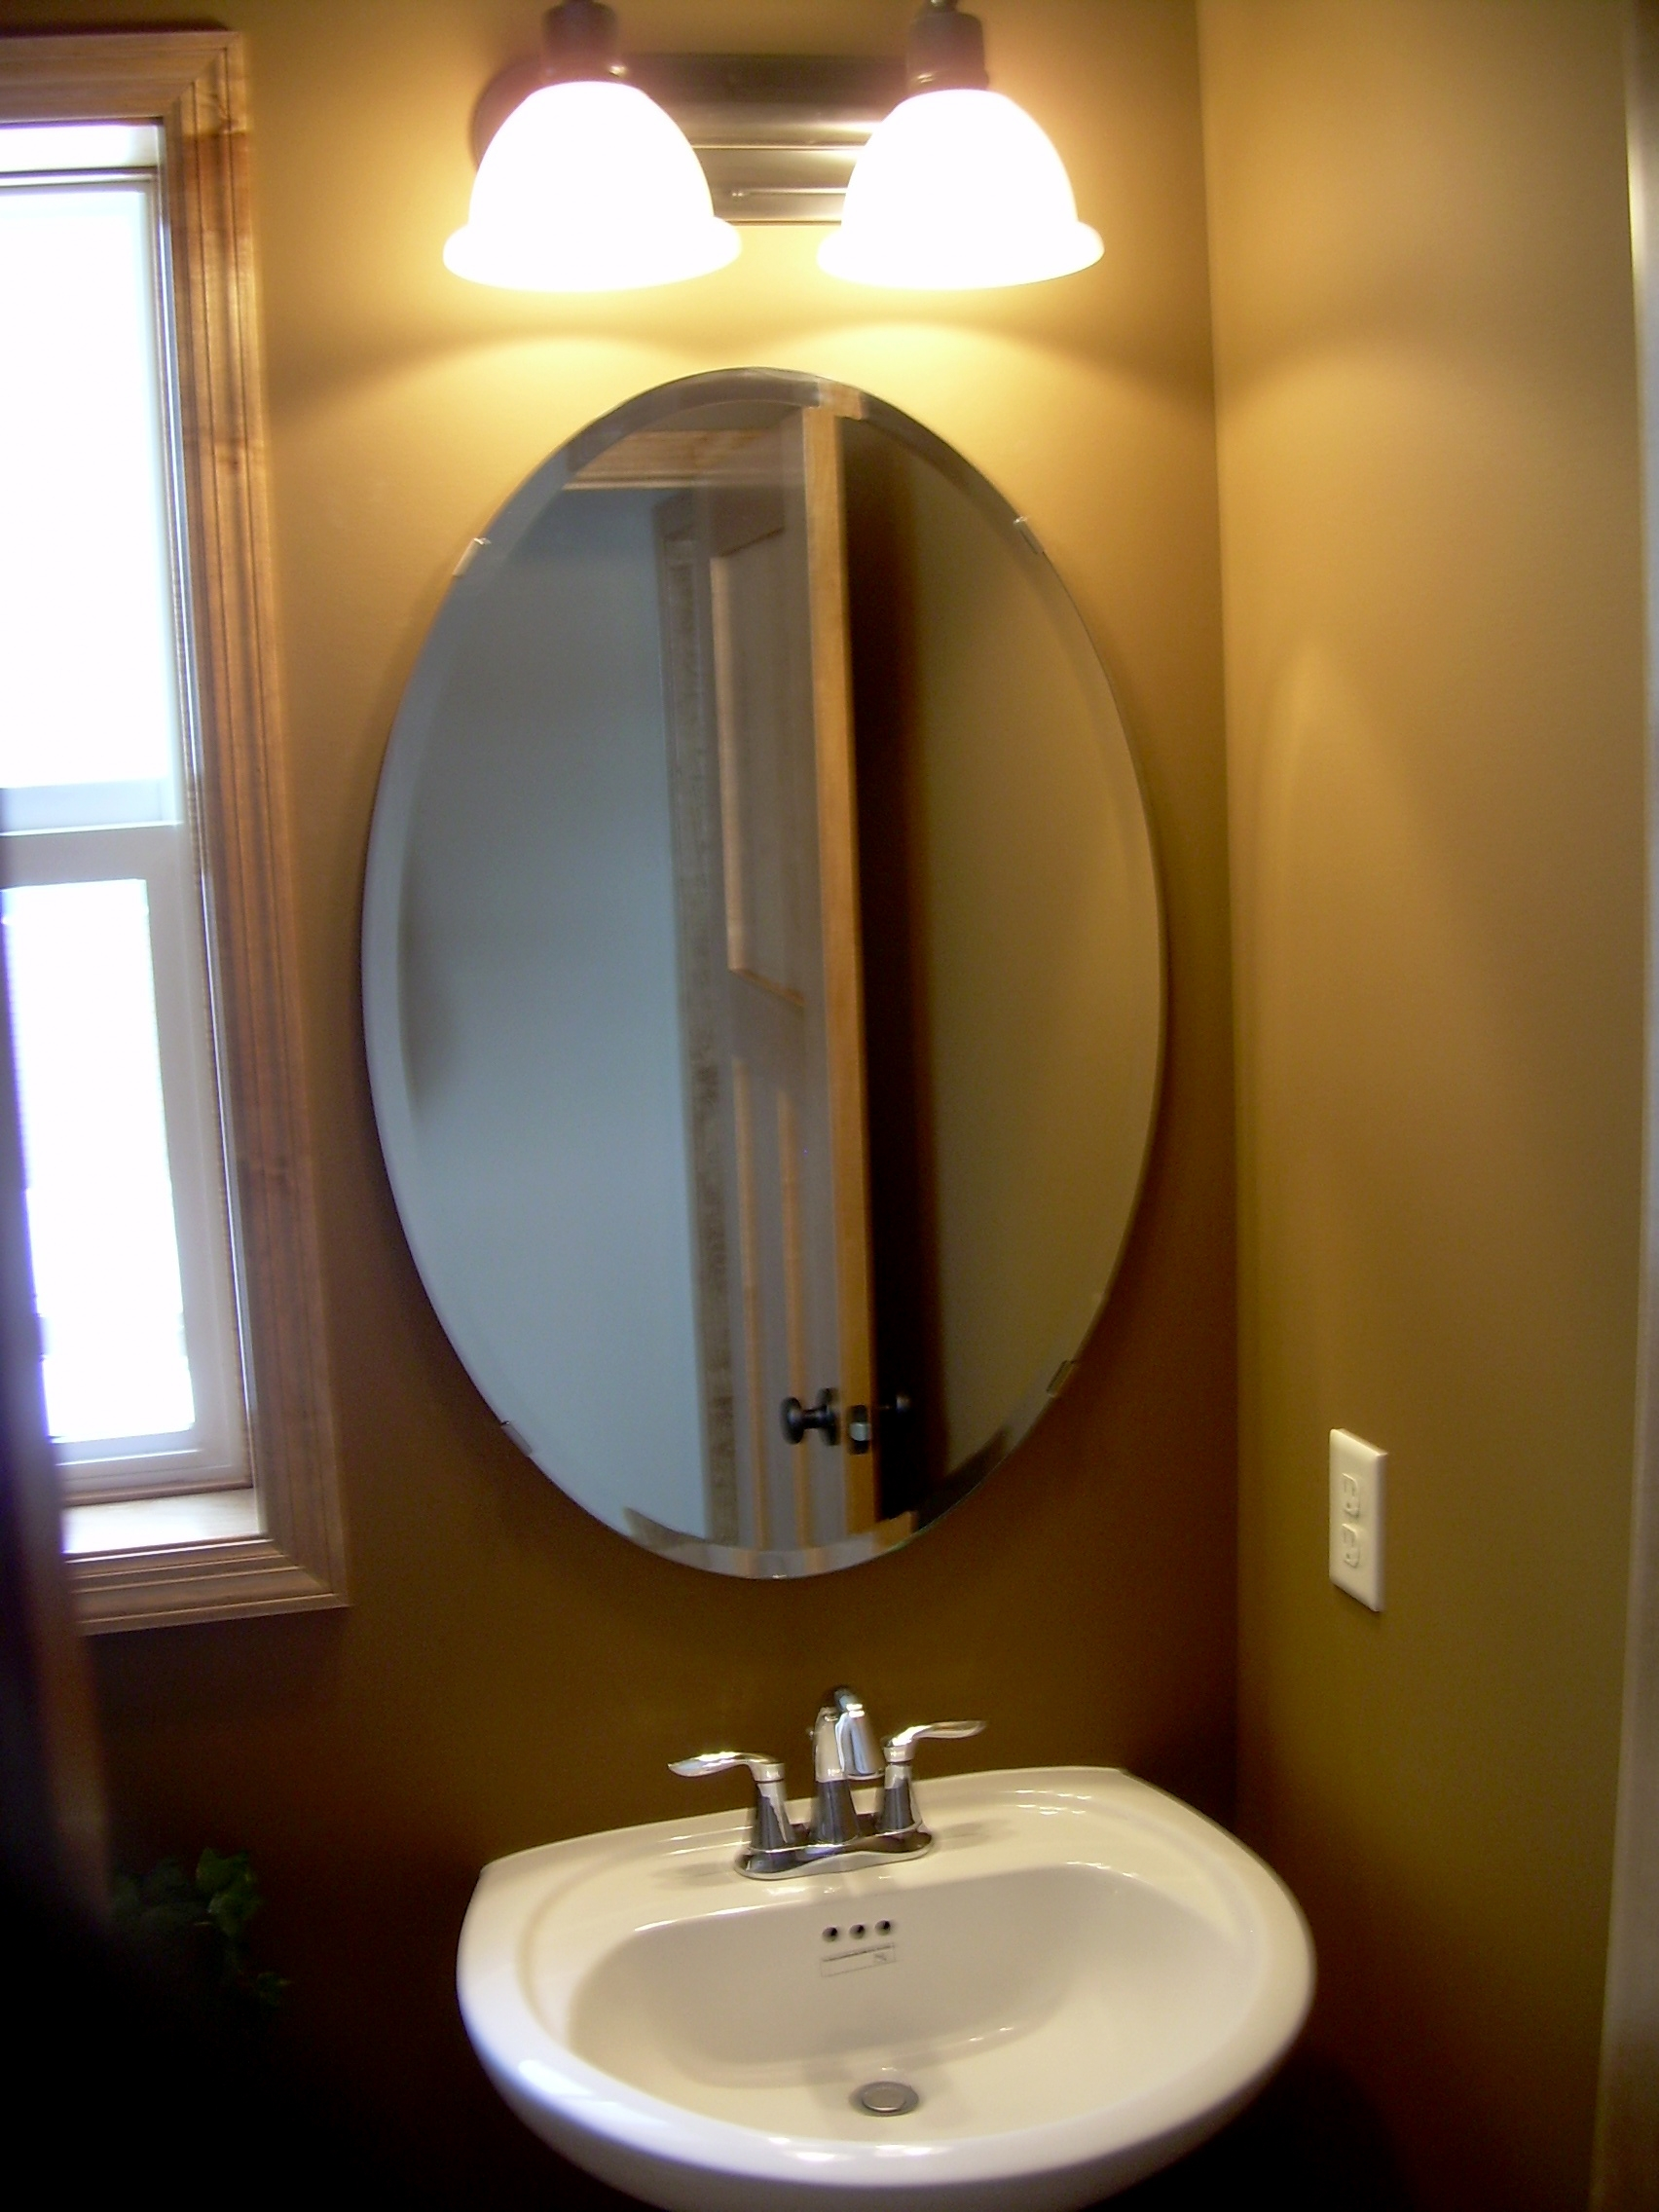 Brown Oval Bathroom Mirrorbathroom mirrors for bathrooms ideas hung on cream wall with oval